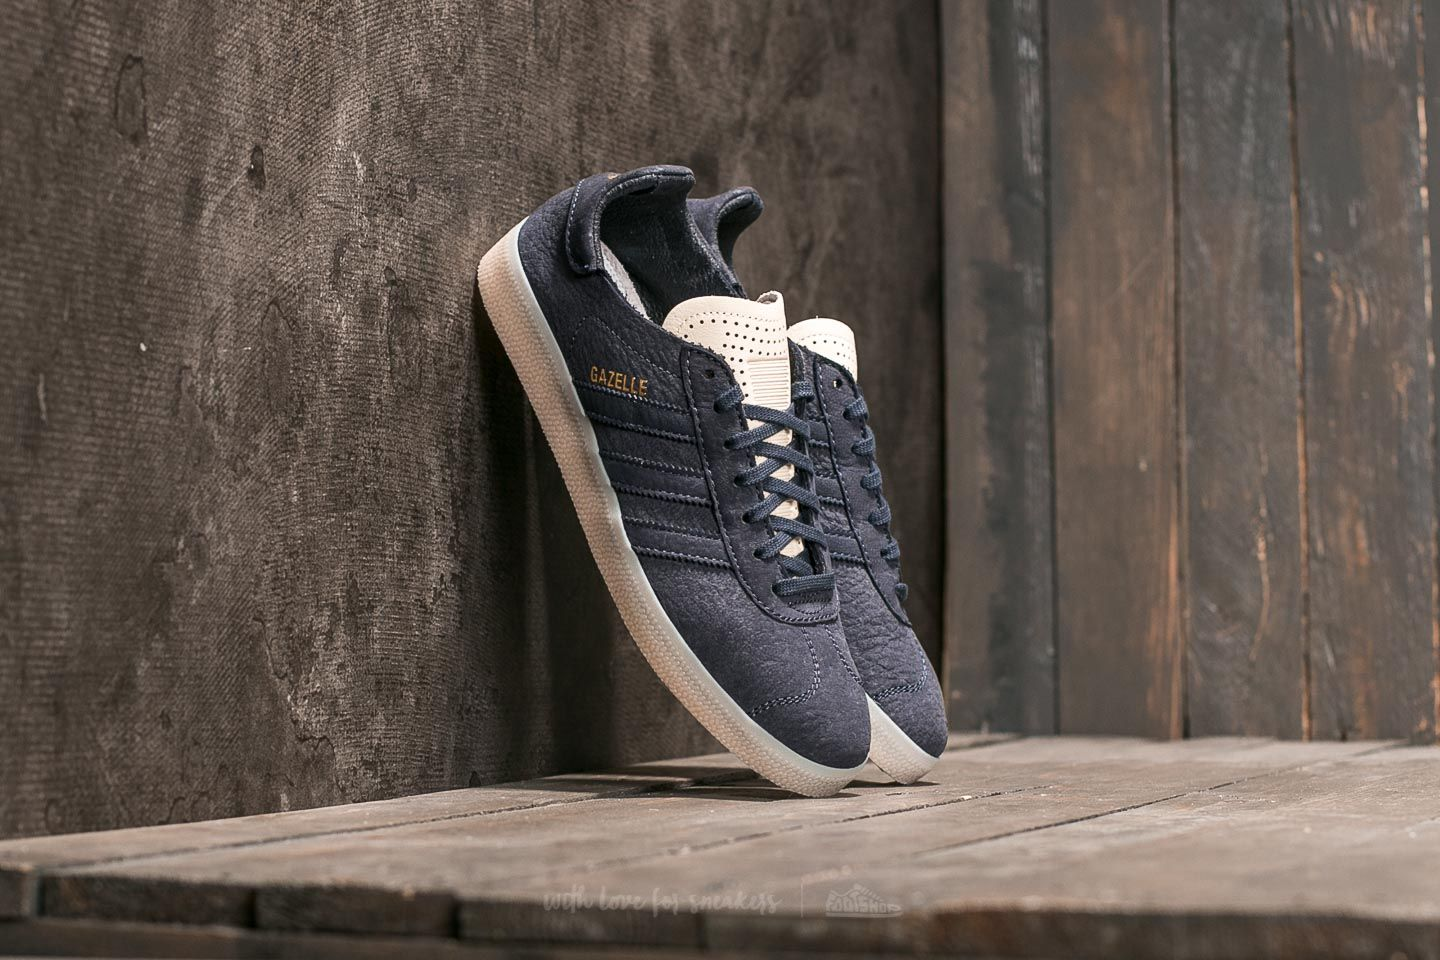 "Pánské tenisky a boty adidas Gazelle ""Crafted Pack"" Supplier Colour/ Ftw White/ Gold Metallic"